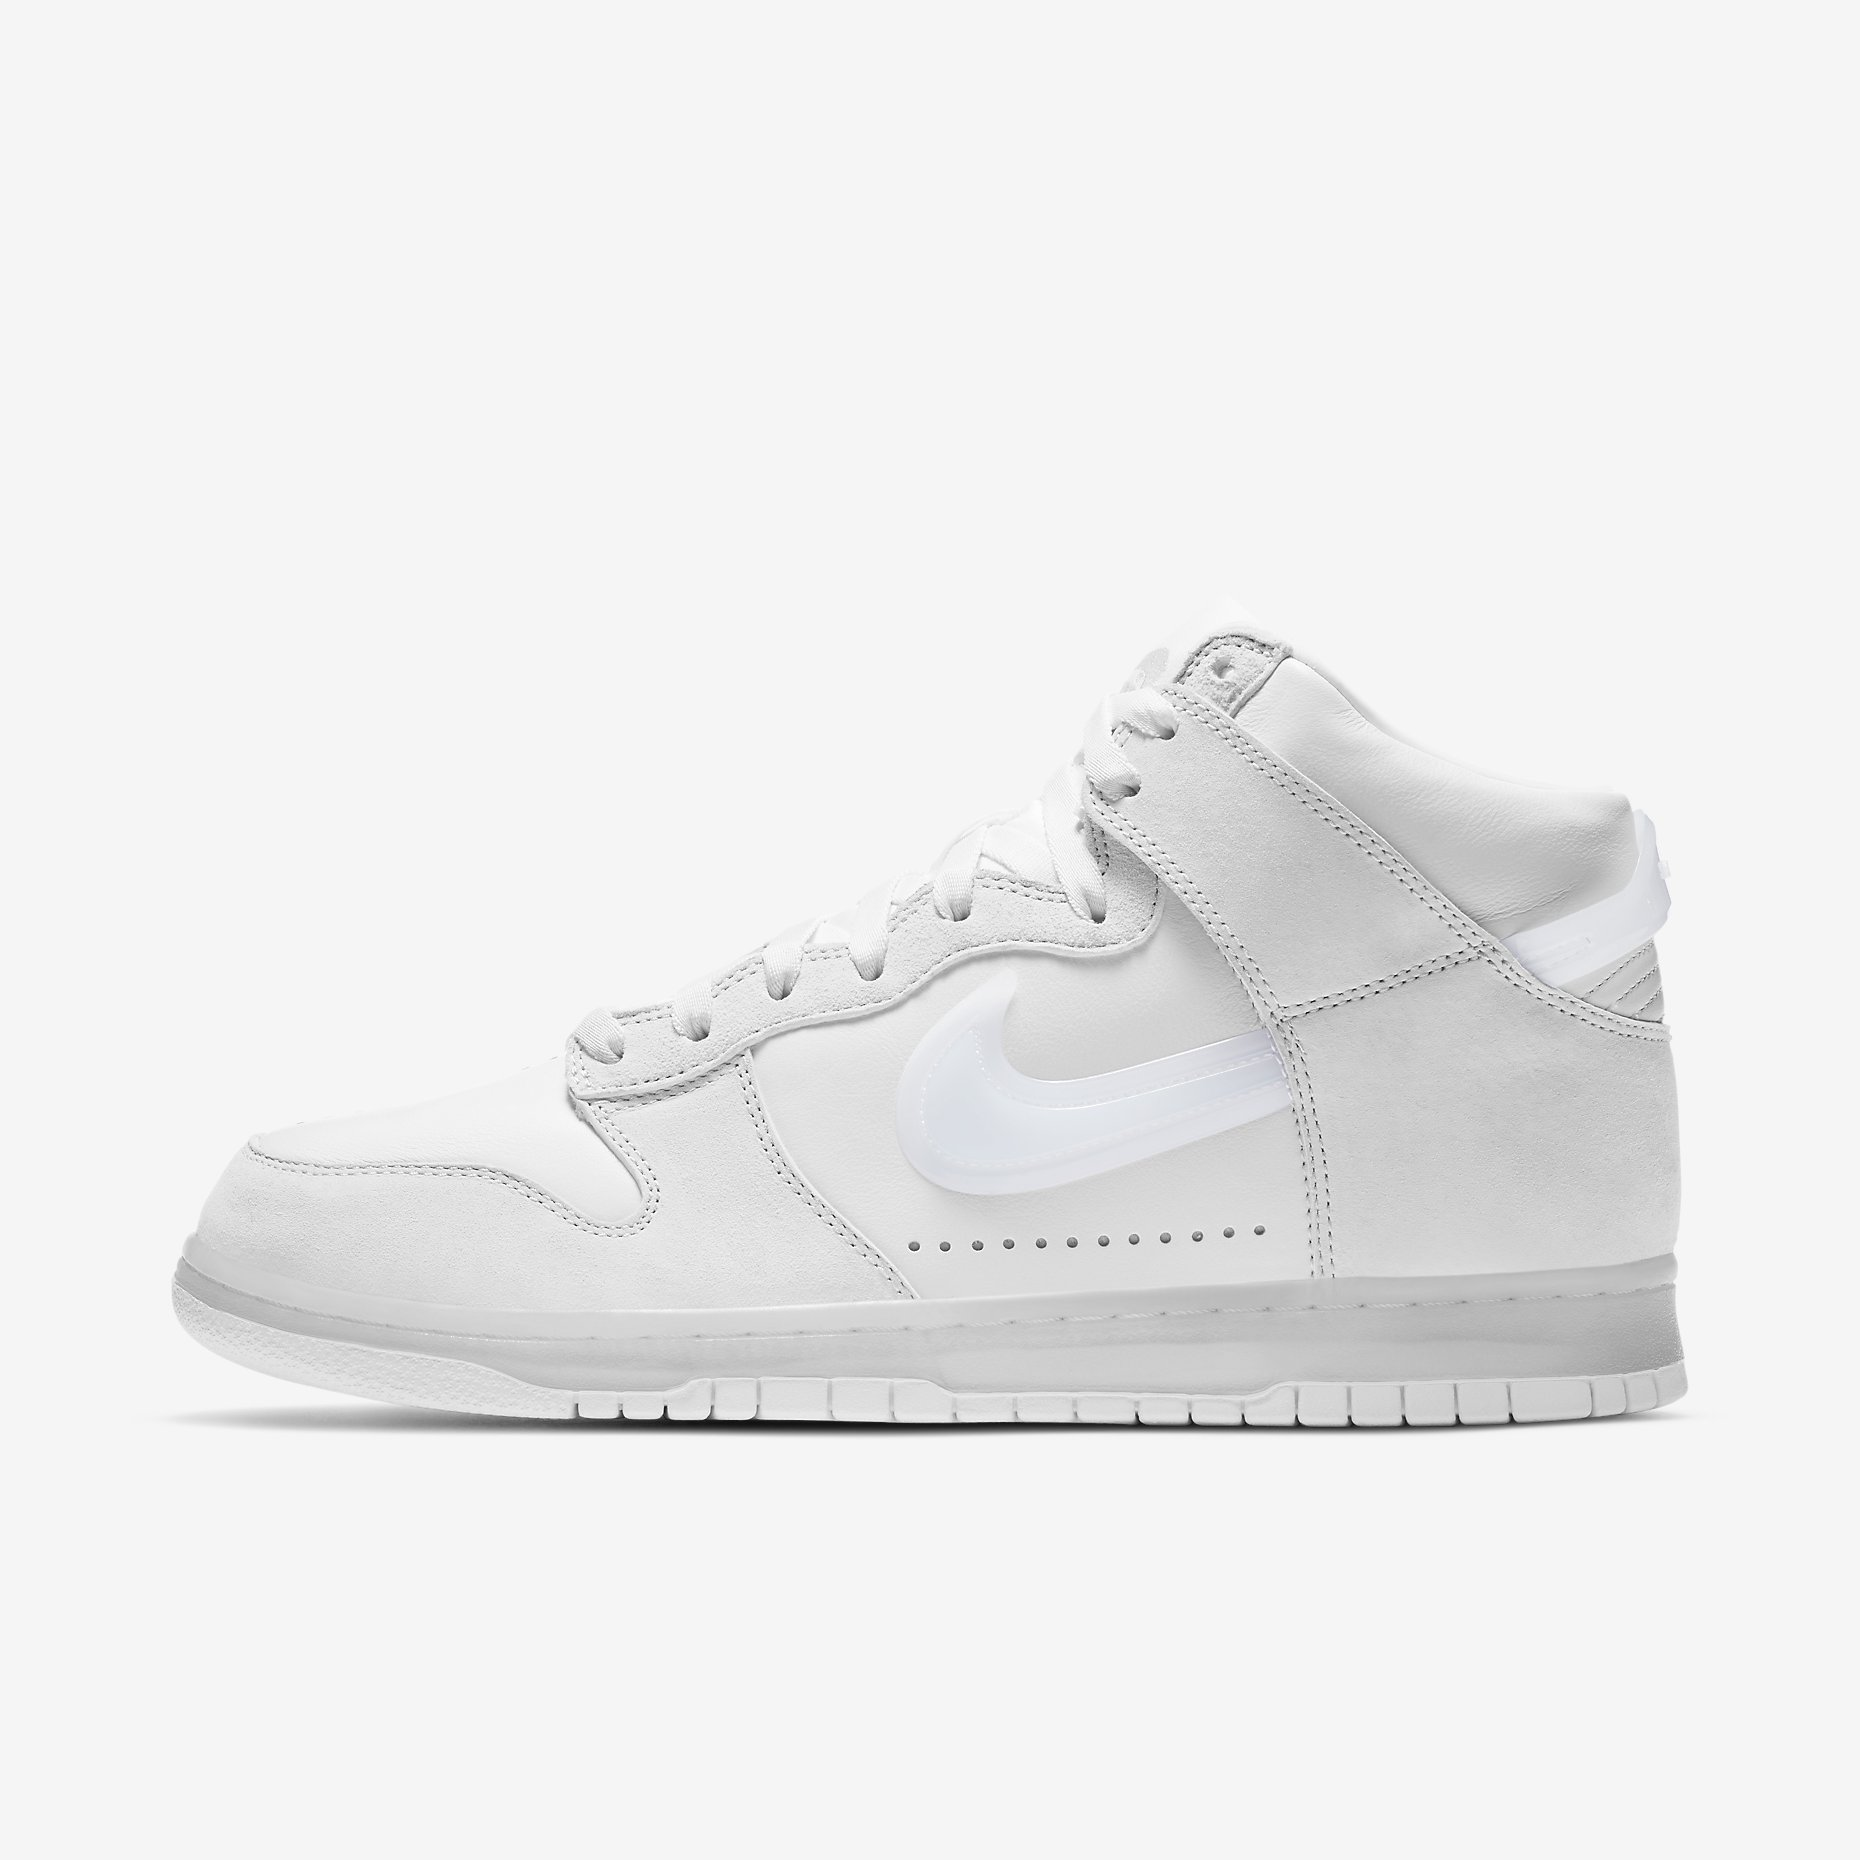 Slam Jam x Nike Dunk High 'Clear White'}